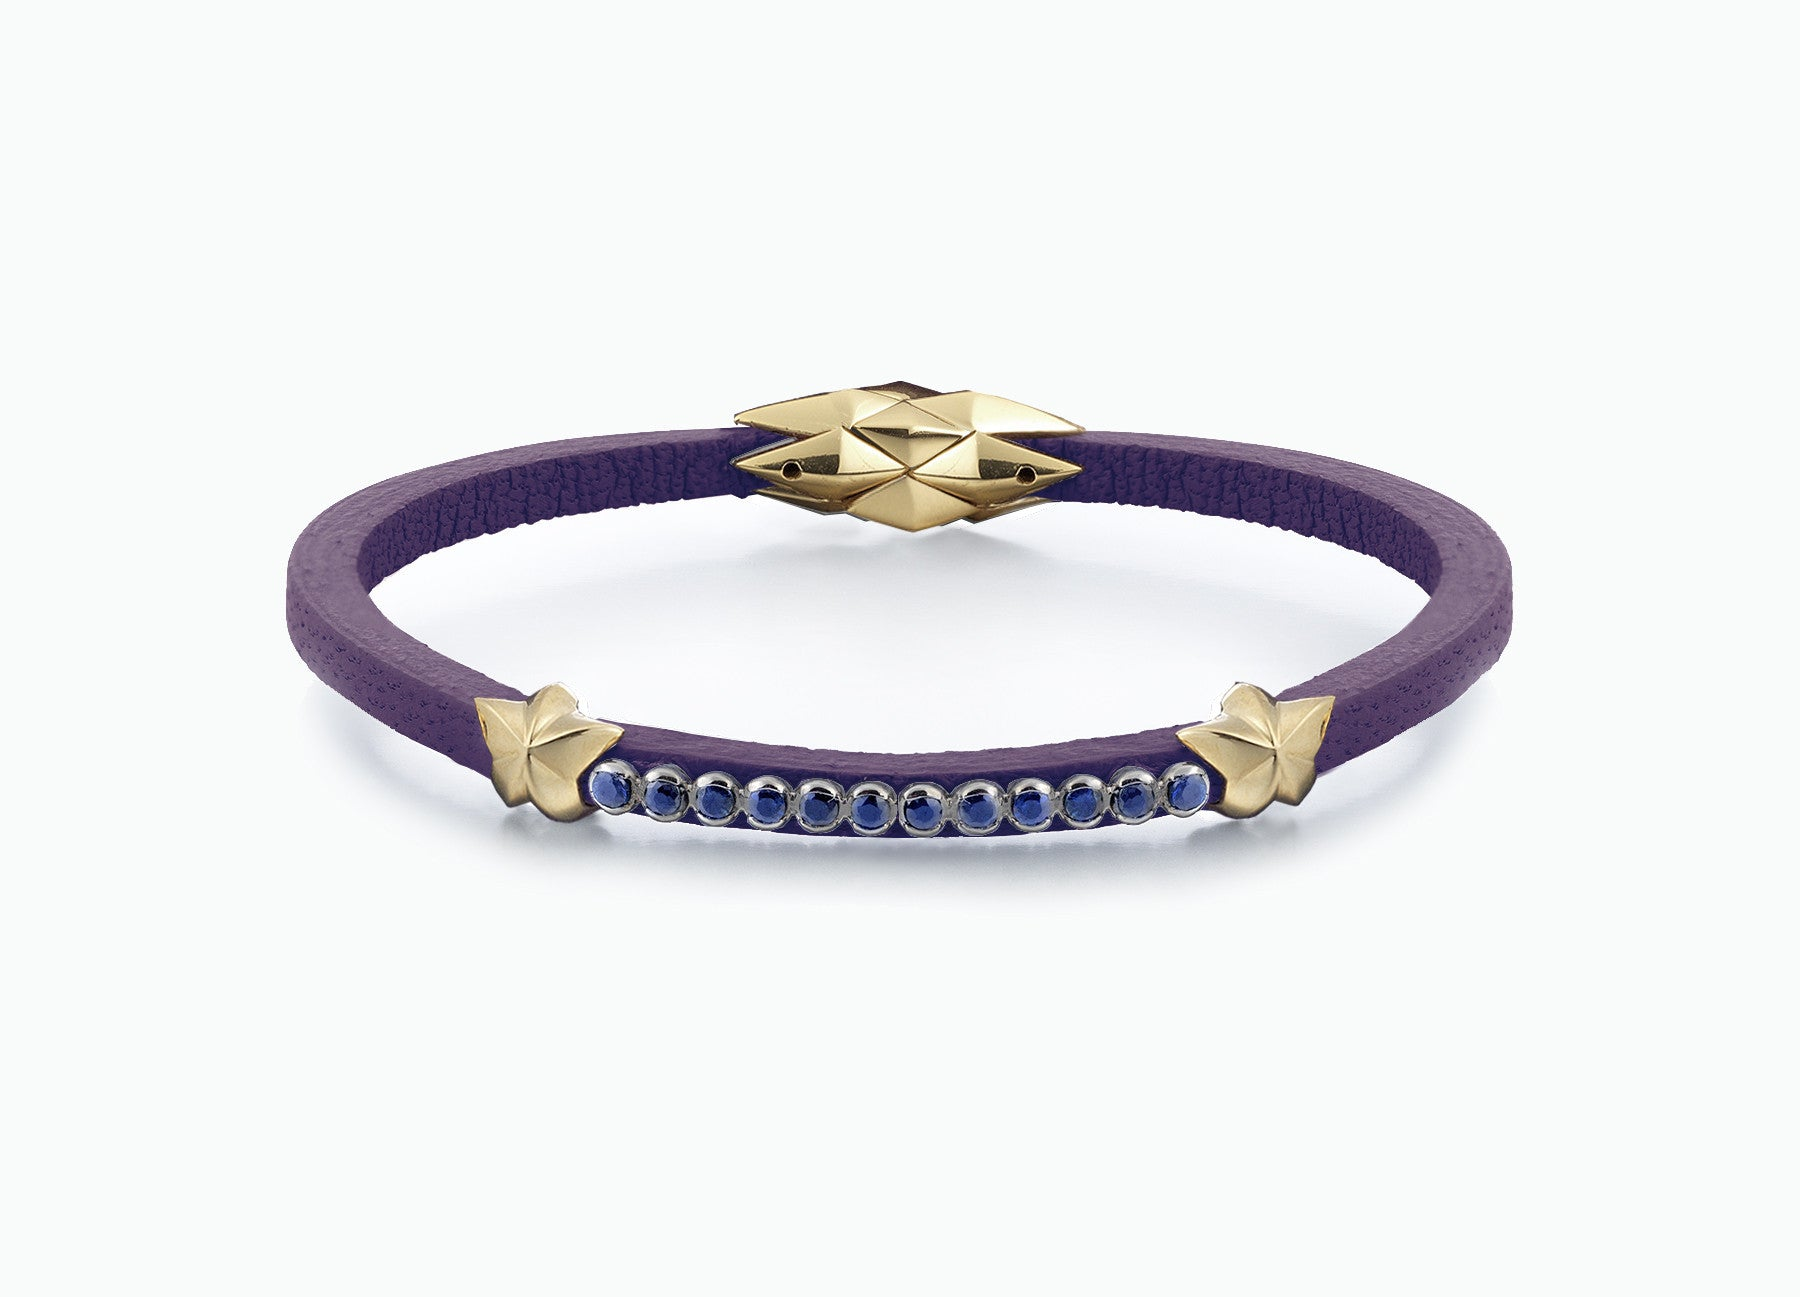 WRAP BRACELETS CITY VIOLA SINGLE WRAP